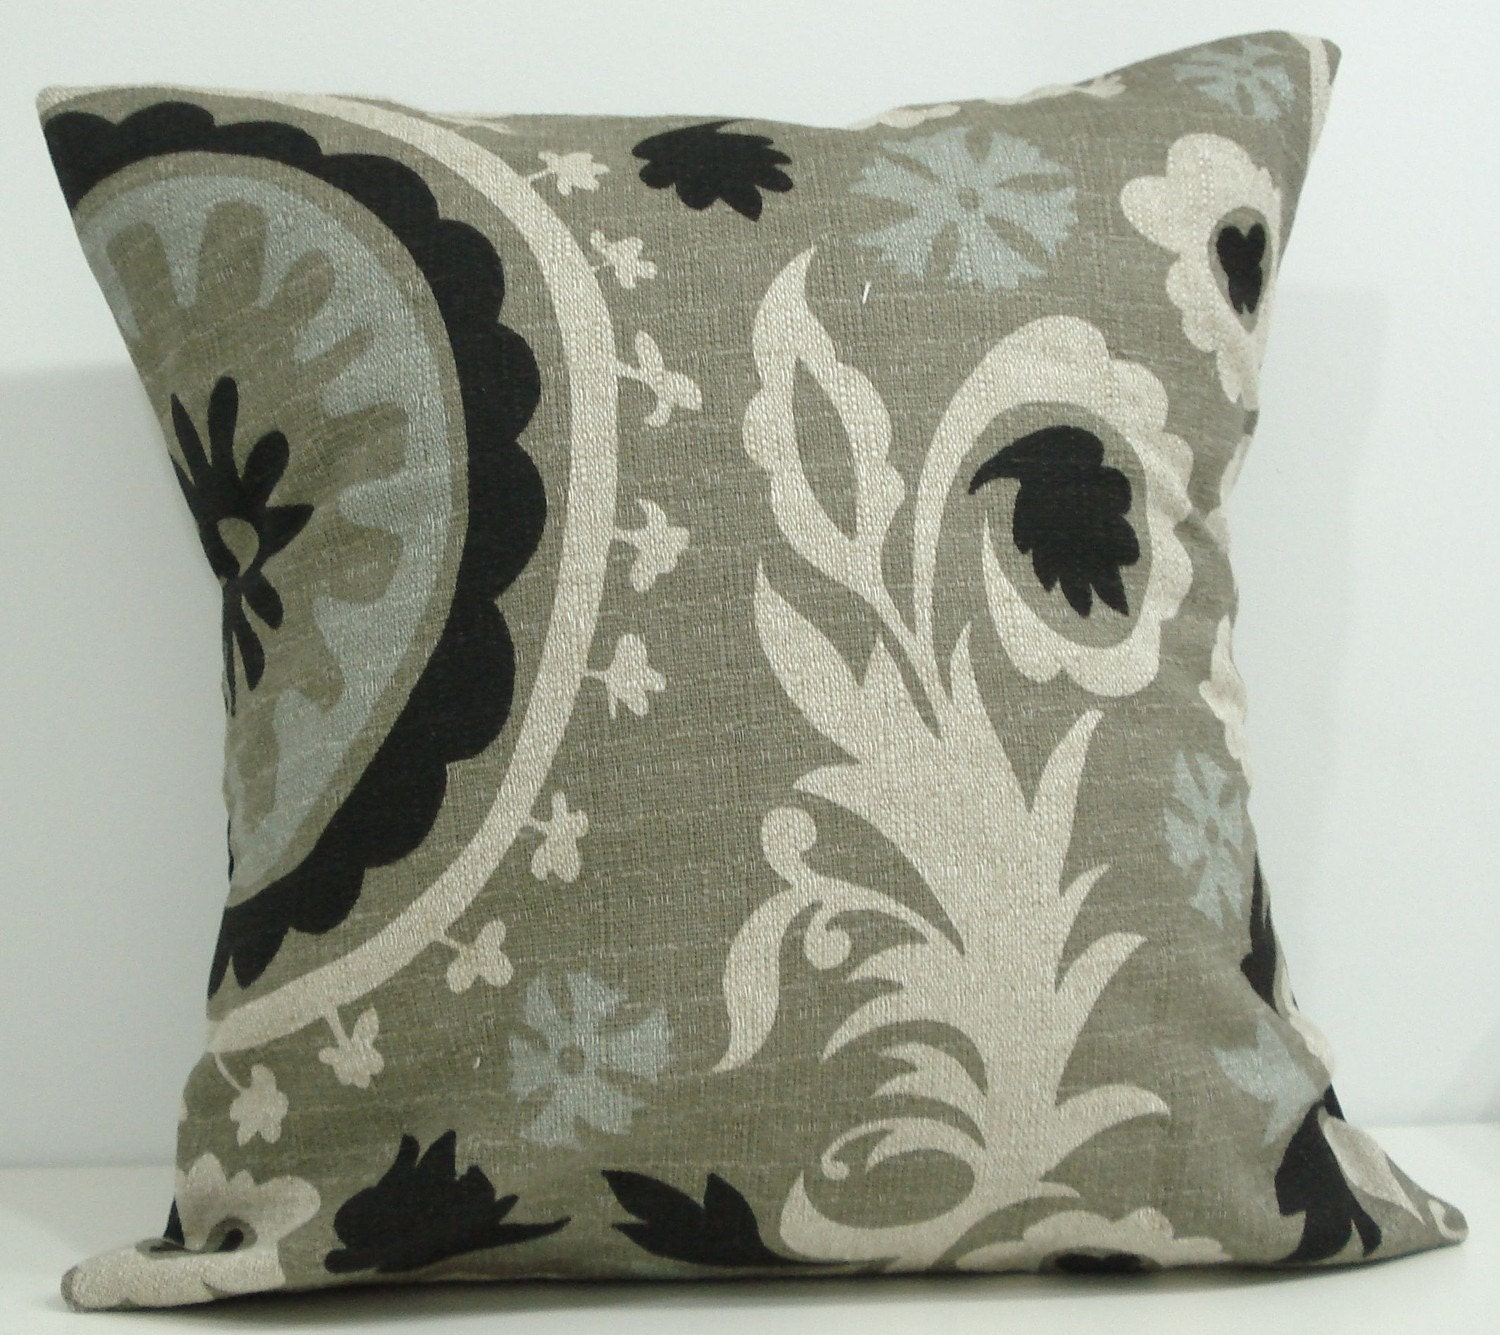 handmade pillows new 18x18 inch designer handmade pillow suzani print in 8028